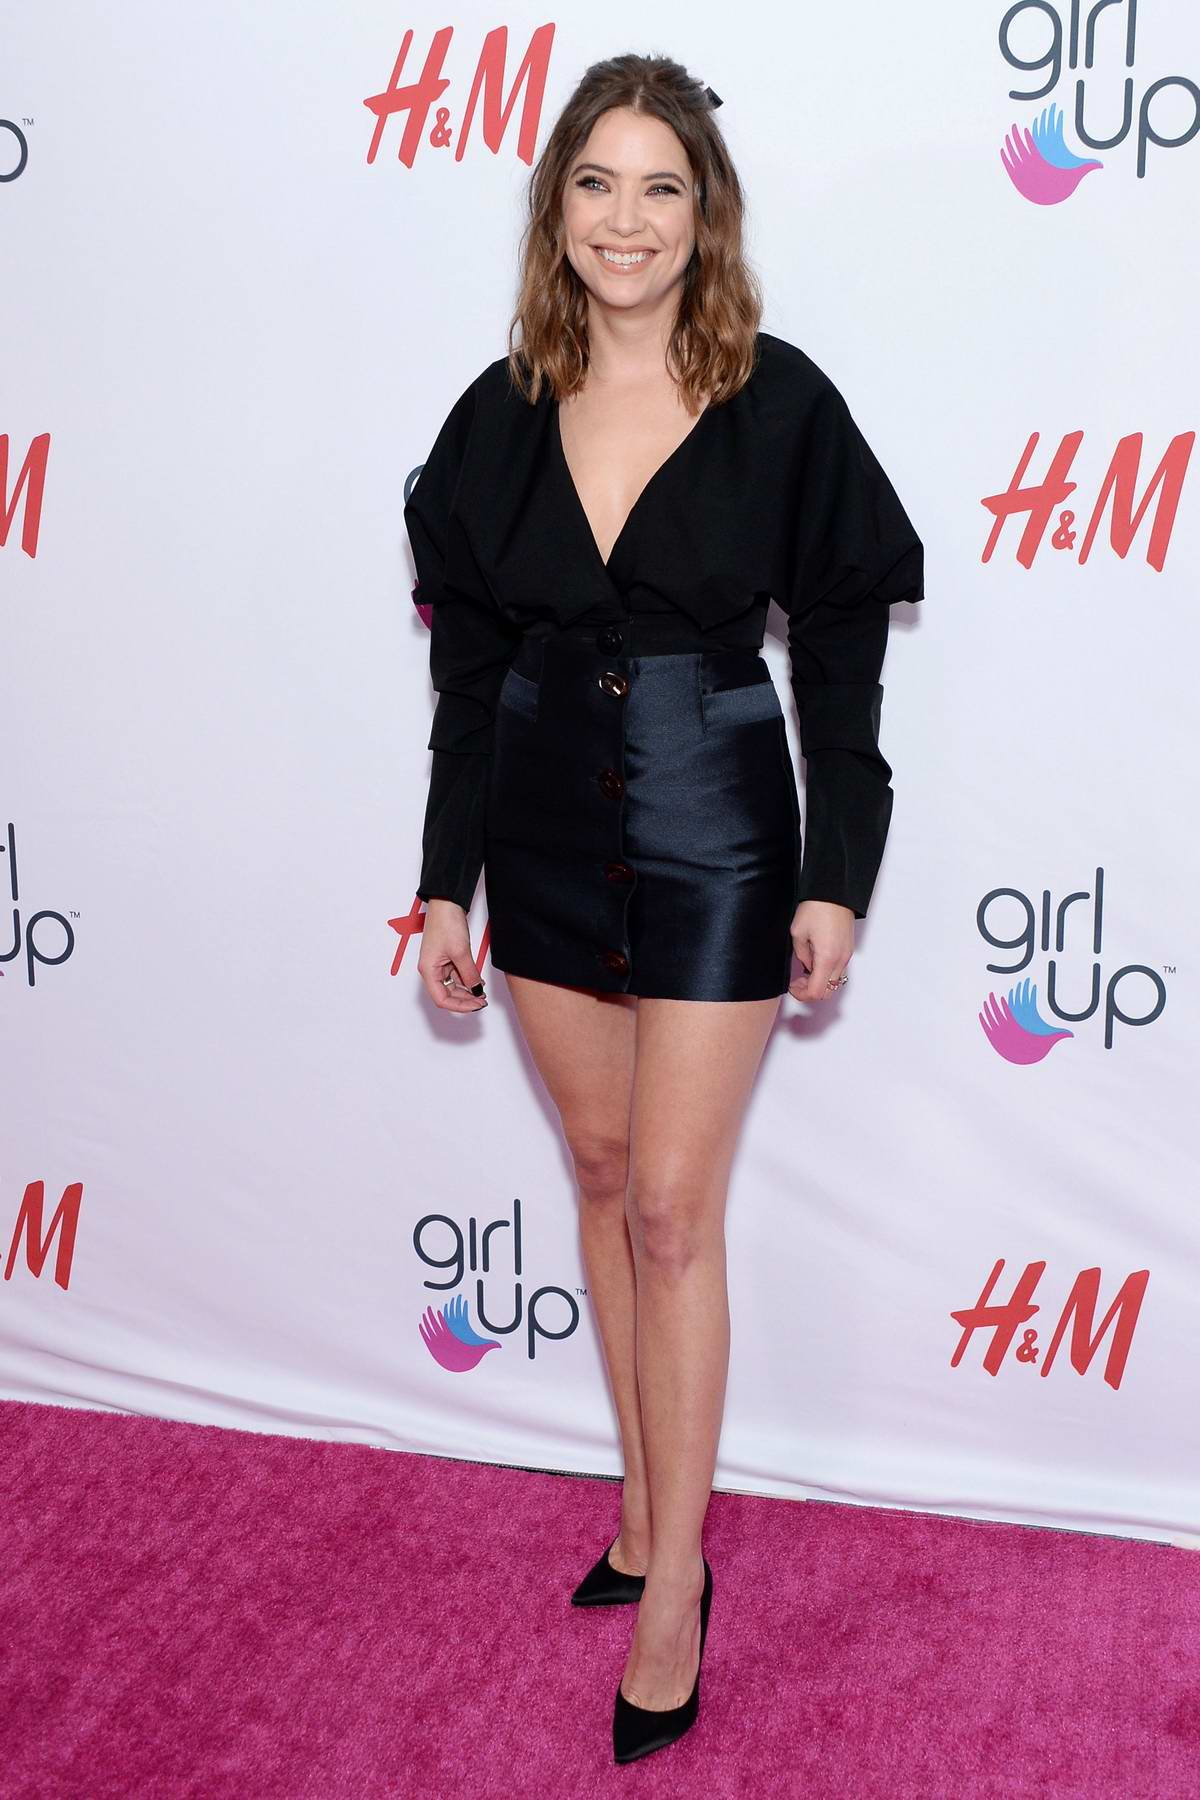 Ashley Benson attends the 2nd Annual Girl Up #GirlHero Awards at the Beverly Wilshire Hotel in Beverly Hills, Los Angeles